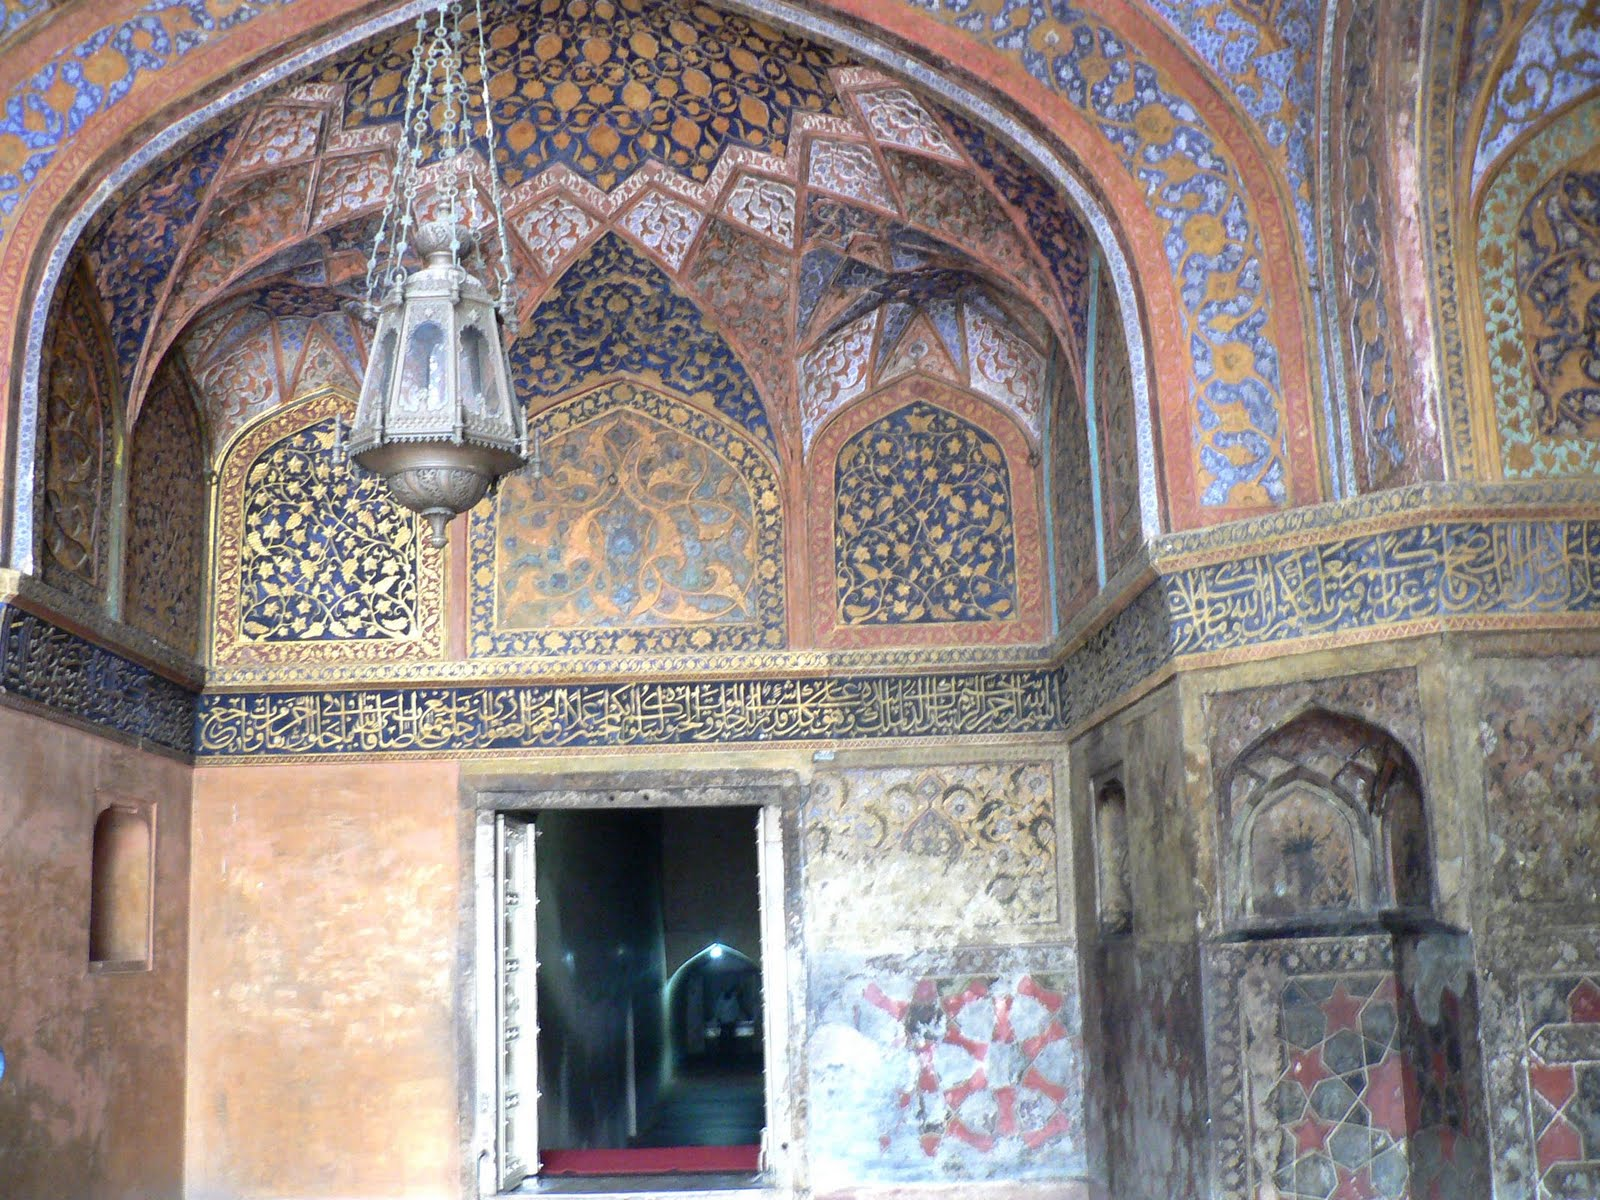 Akbar Tomb Historical Facts and Pictures | The History Hub